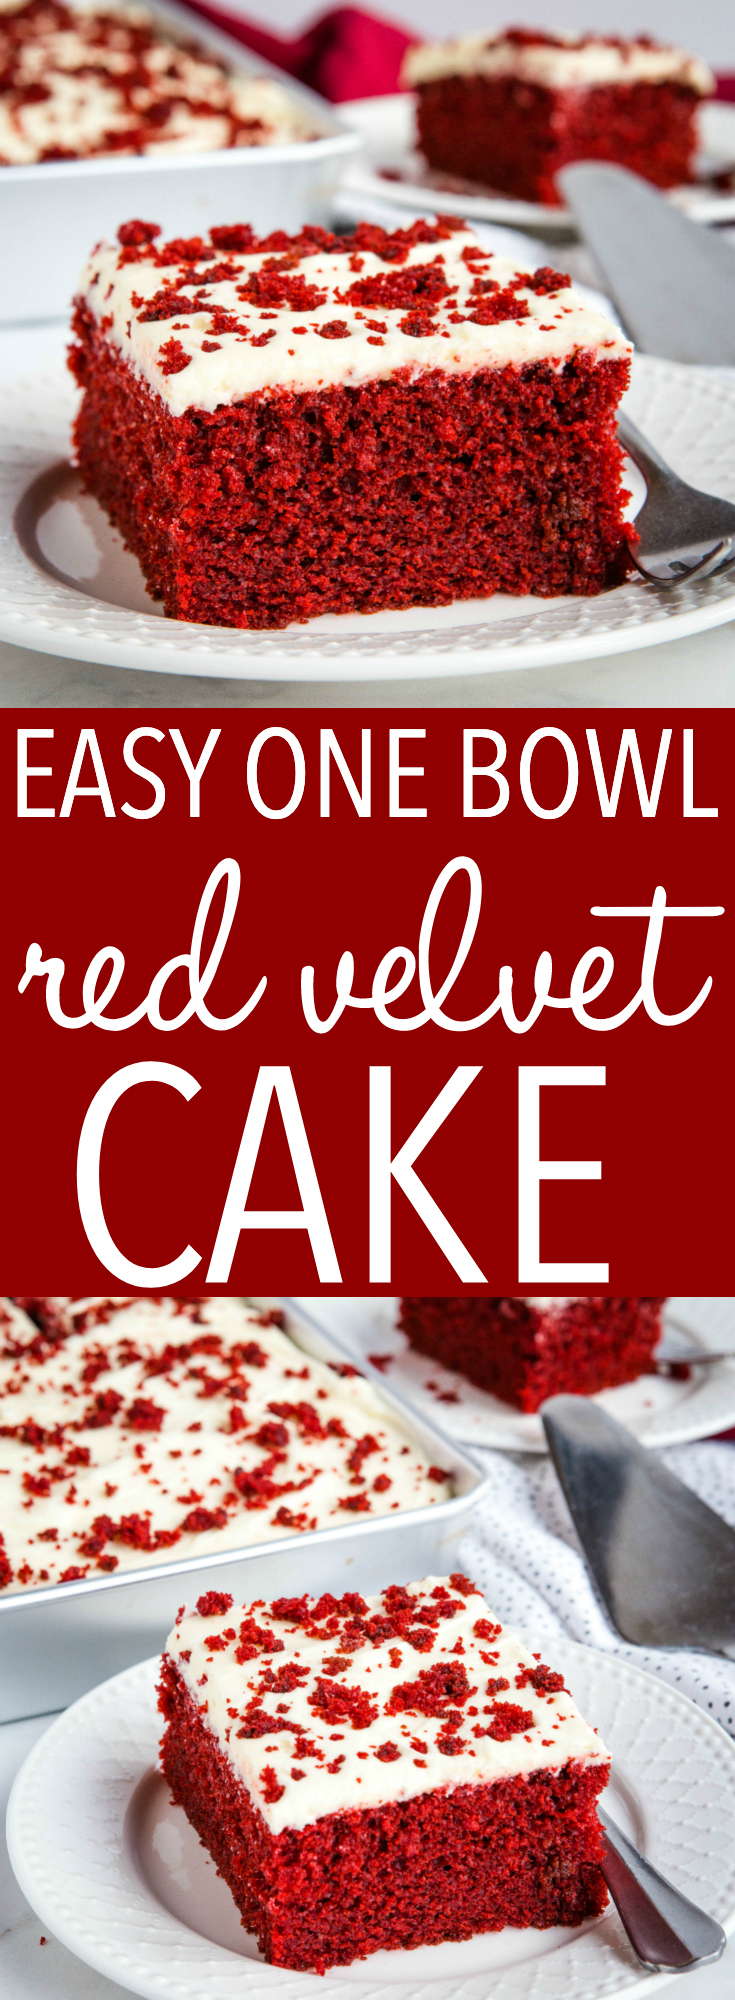 This Easy One Bowl Red Velvet Cake is perfectly moist and delicious, bright red and chocolatey, and topped with a fluffy sweet cream cheese buttercream frosting! Recipe from thebusybaker.ca! #redvelvetcake #redvelvet #cake #chocolate #valentinesday #red #dessert #sweet #treat #homemade #onebowl #easycake via @busybakerblog